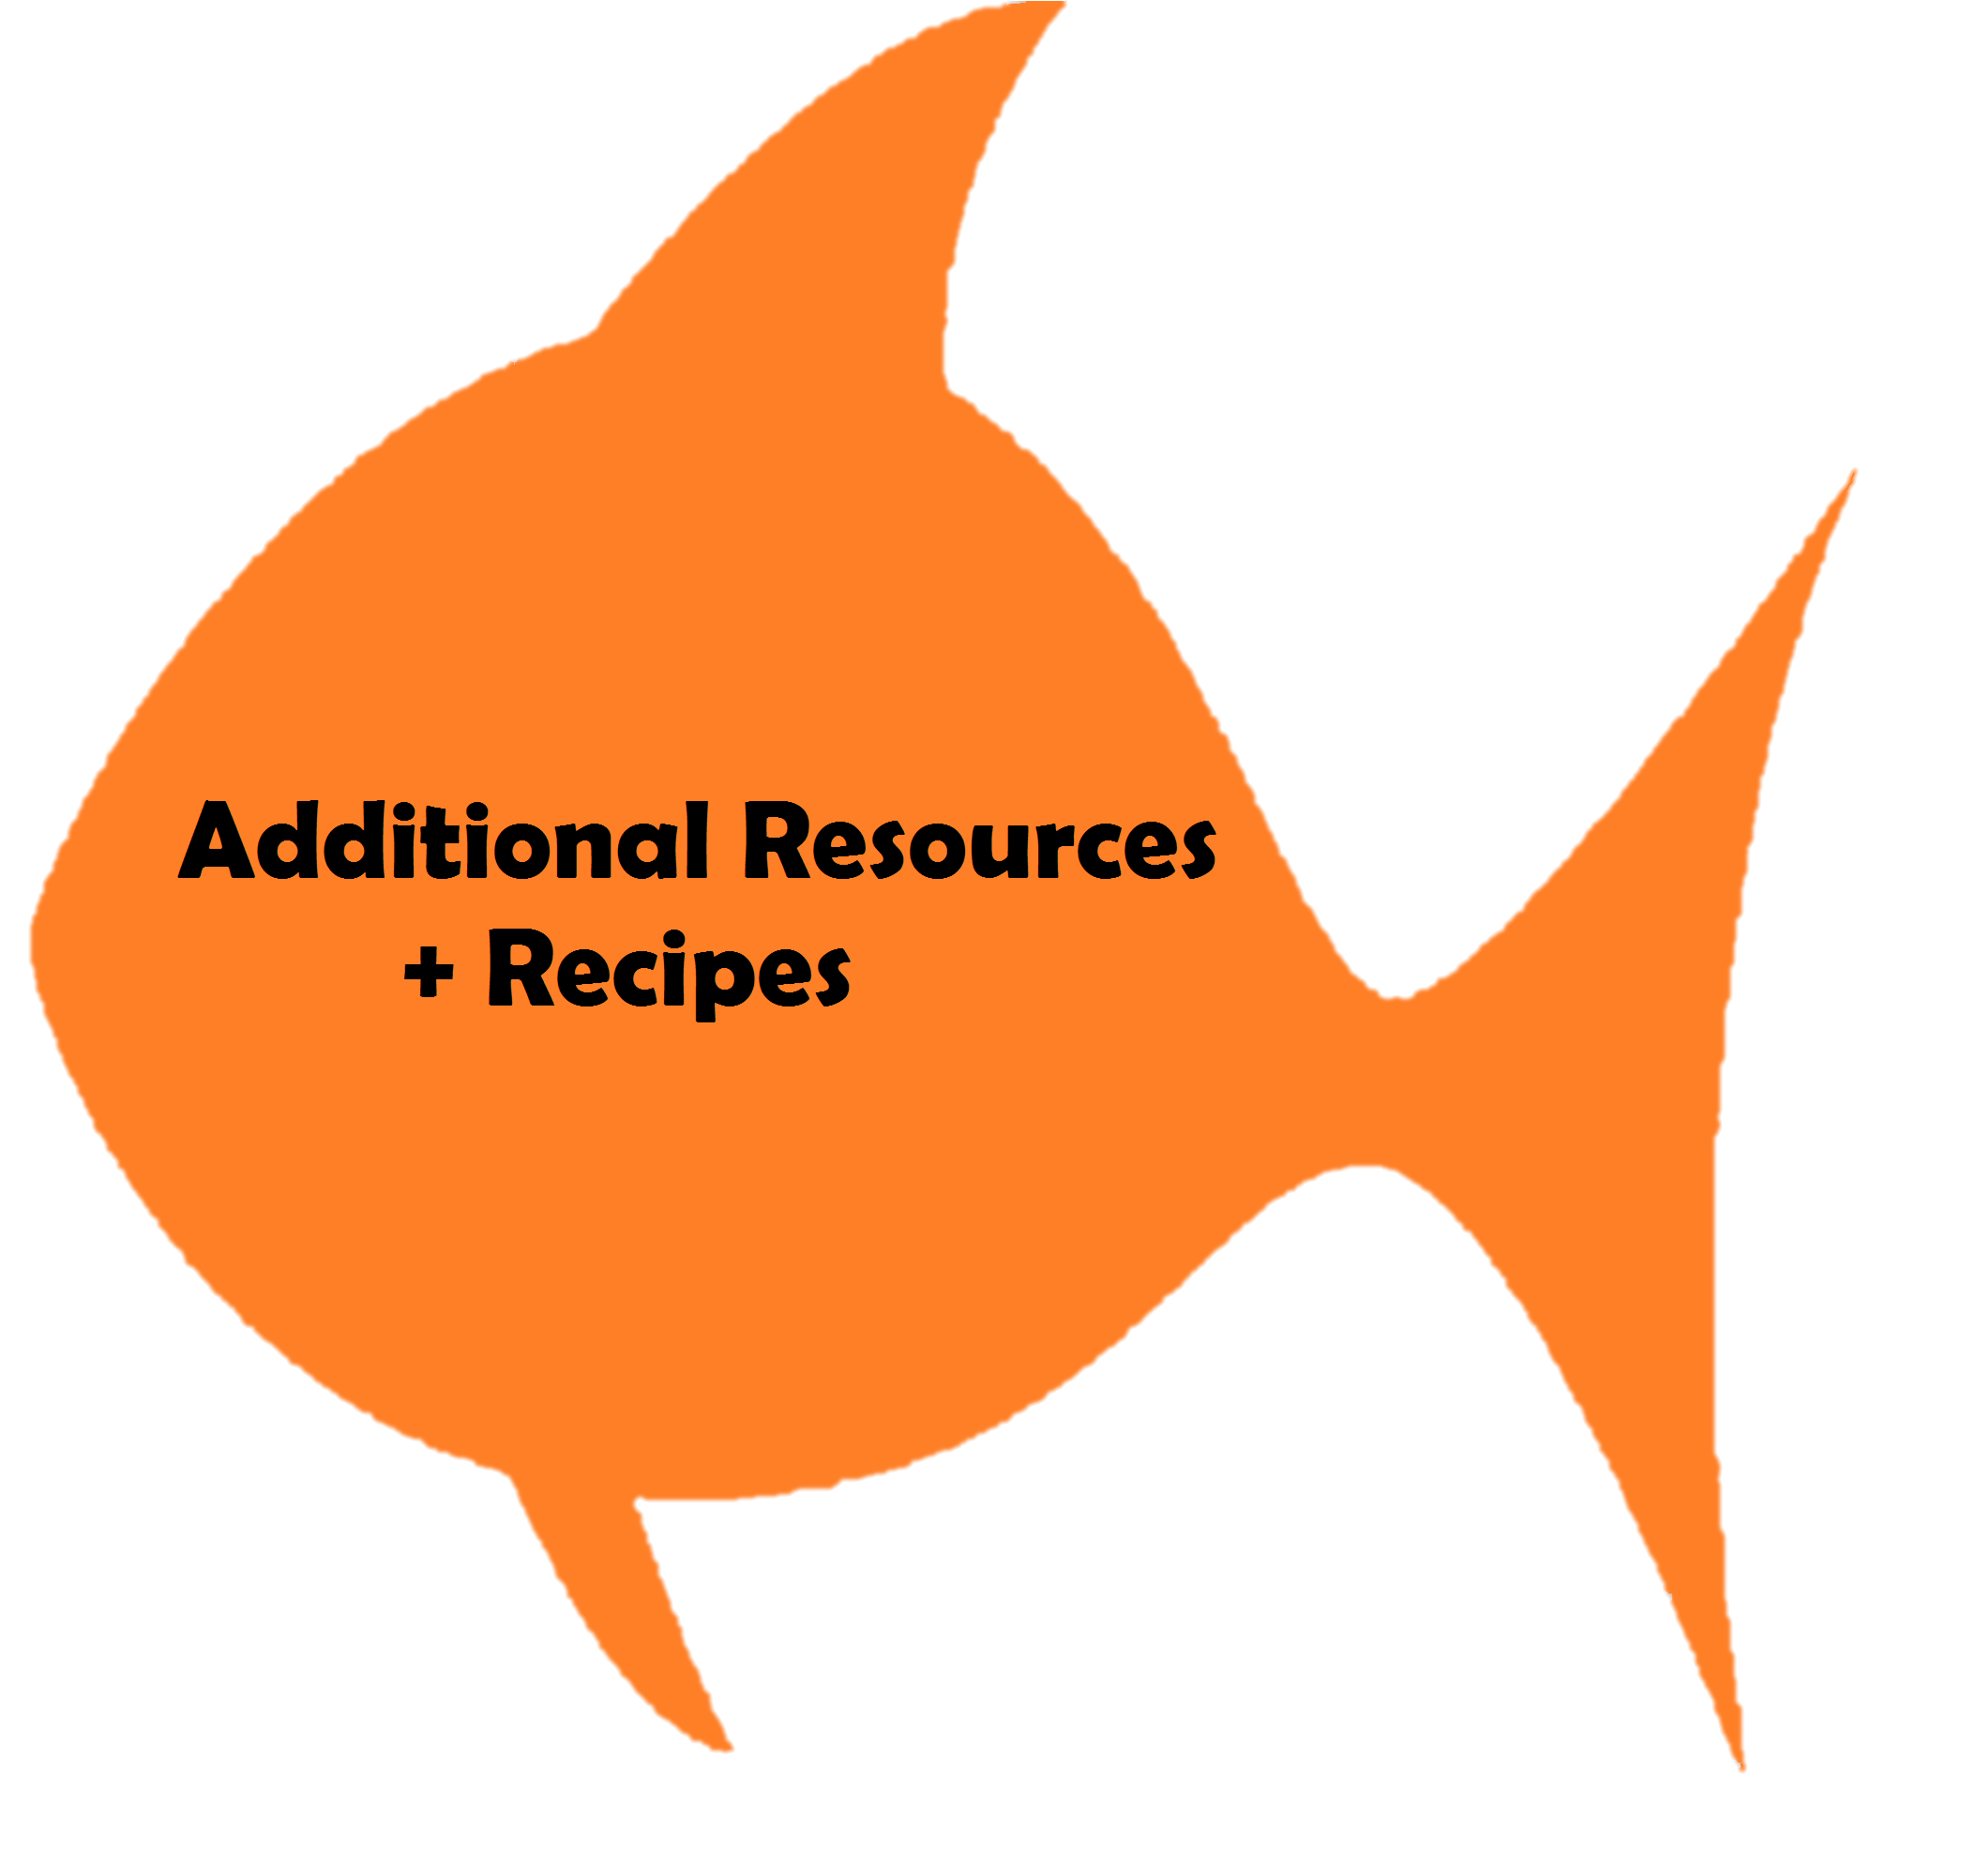 Additional Resources and Recipes Bubble